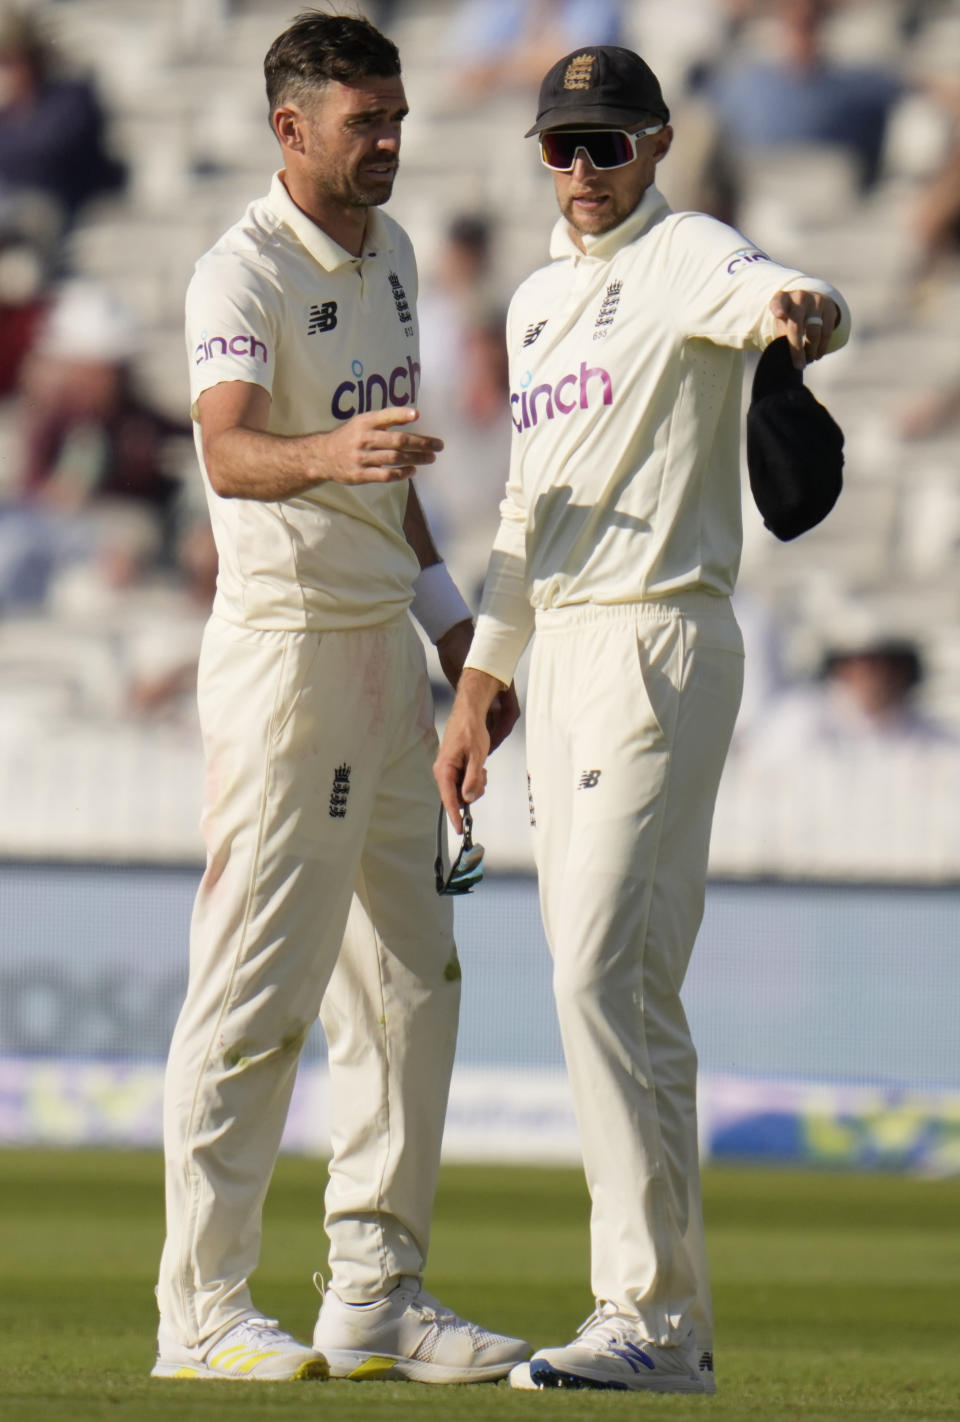 England's Joe Root, right, talks to England's James Anderson during the fourth day of the Test match between England and New Zealand at Lord's cricket ground in London, Saturday, June 5, 2021. (AP Photo/Kirsty Wigglesworth)